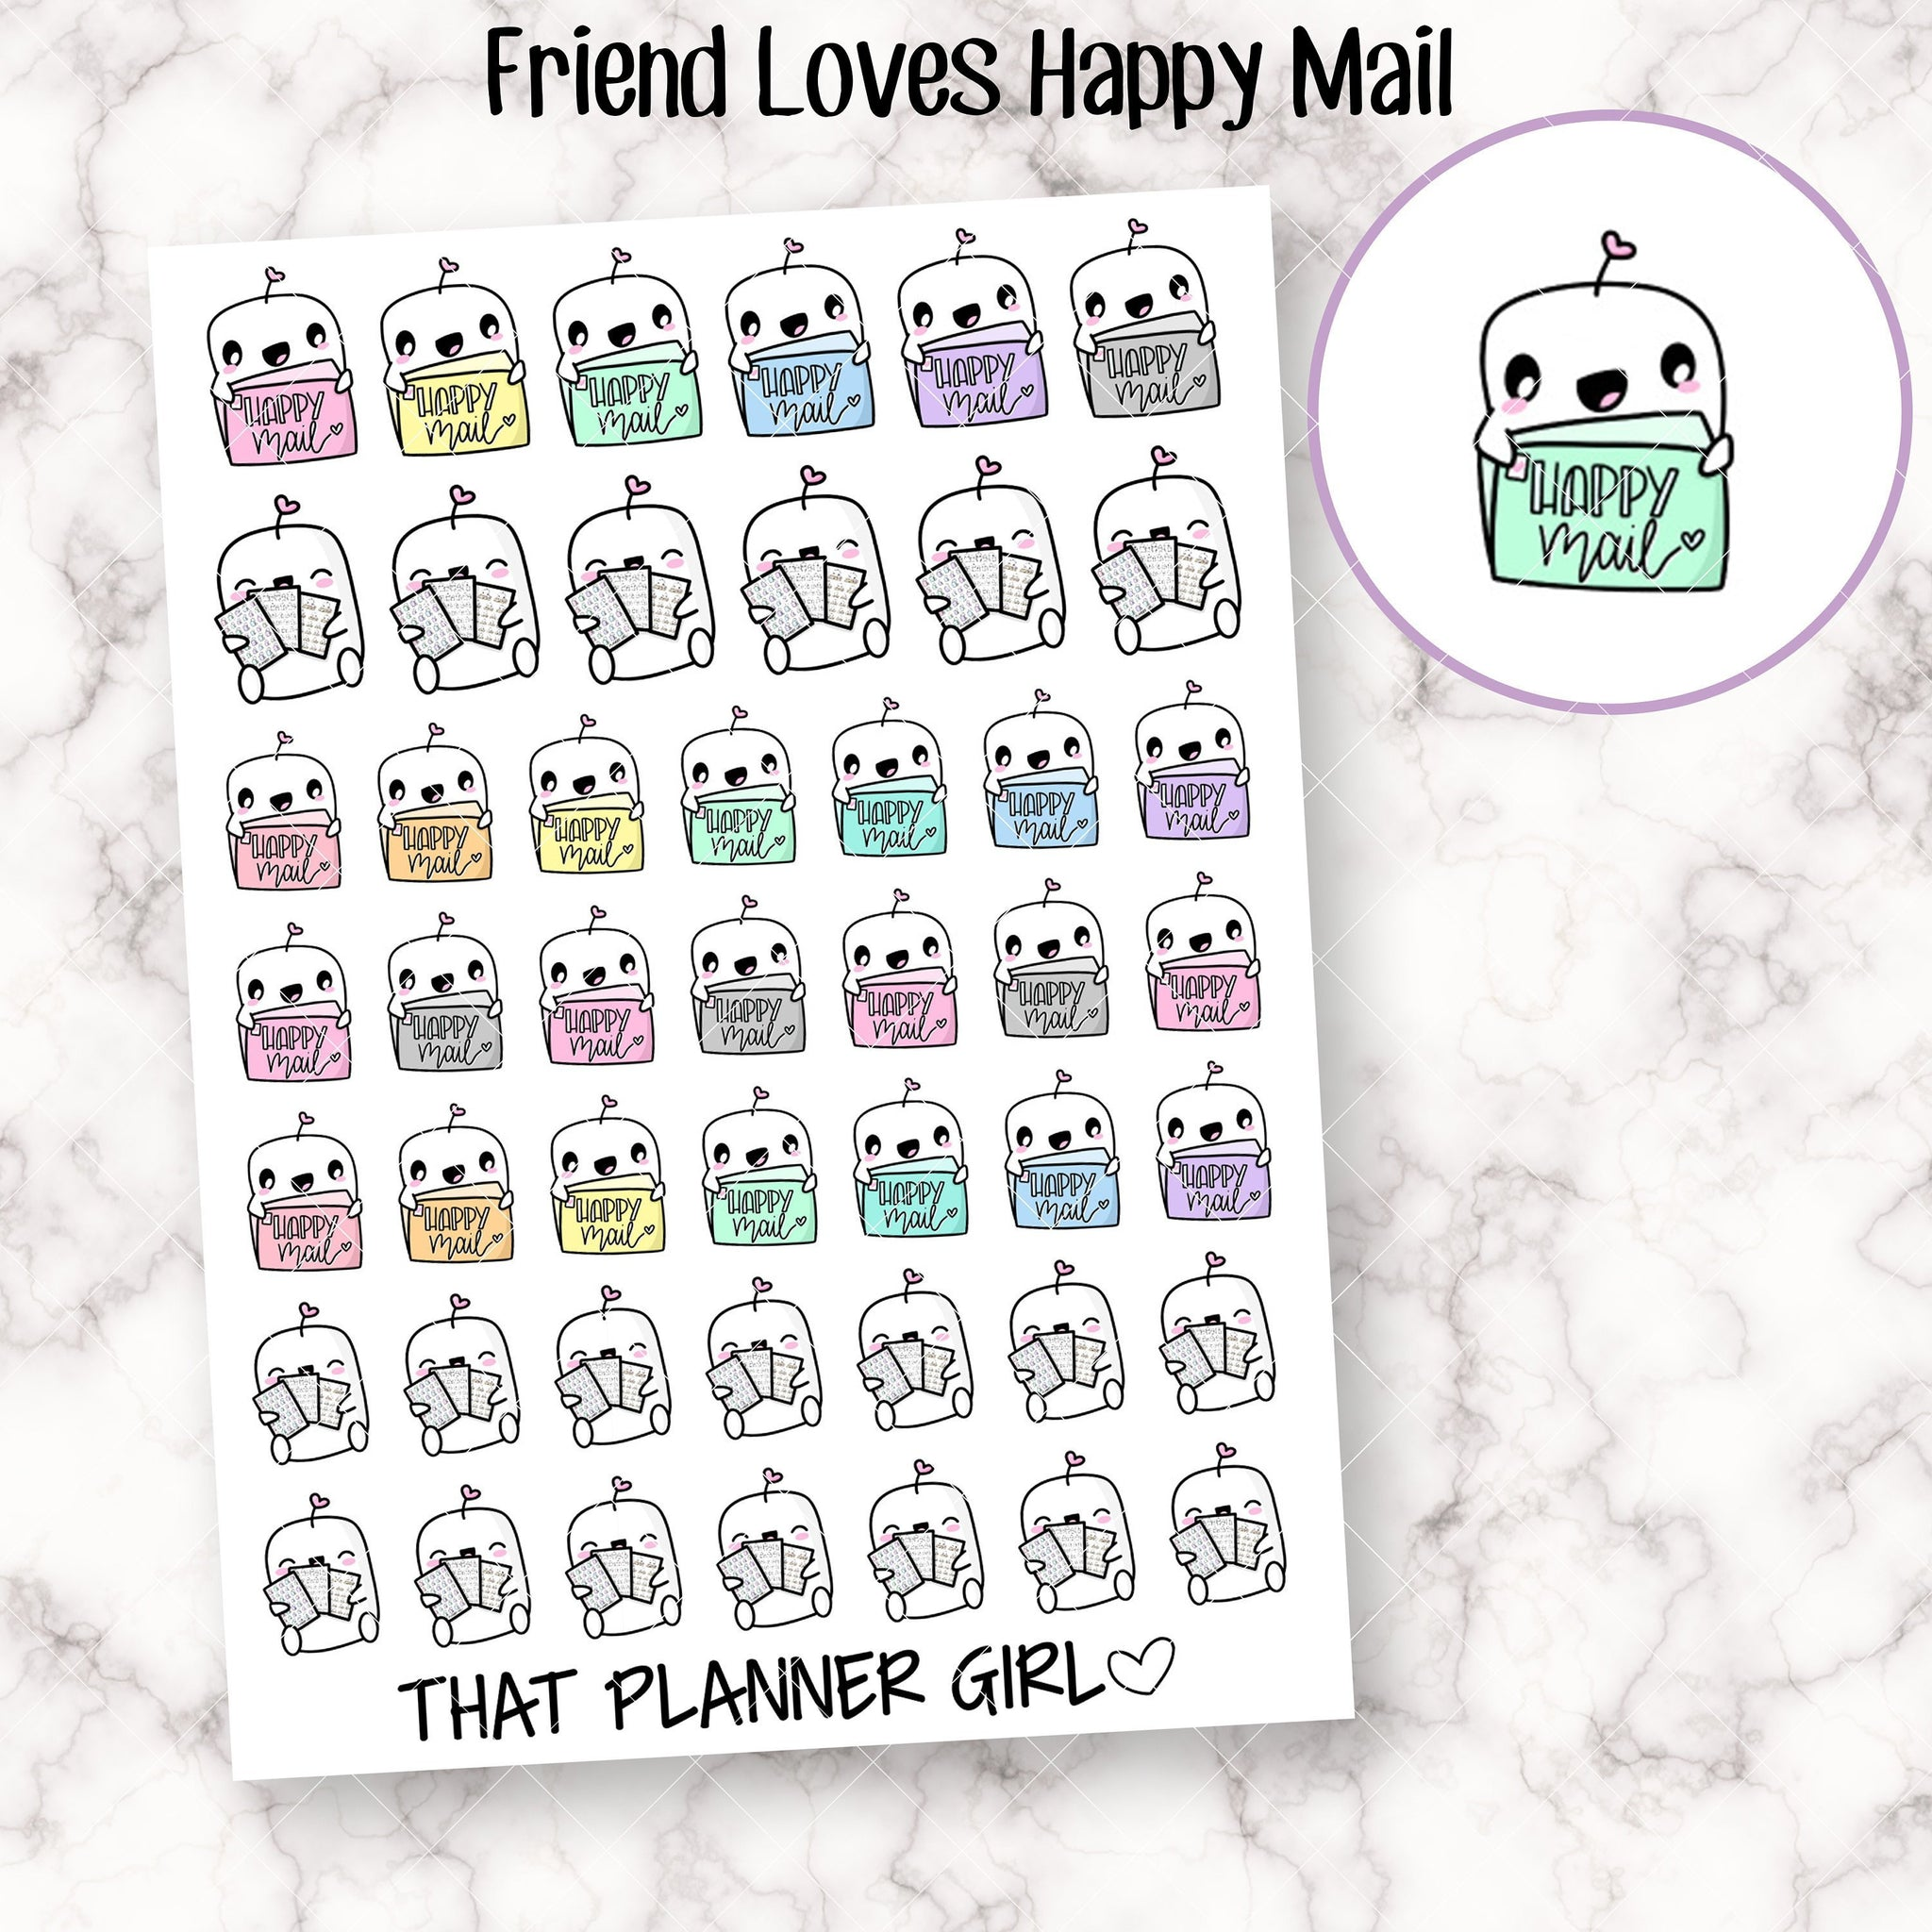 Friend with Happy Mail Stickers